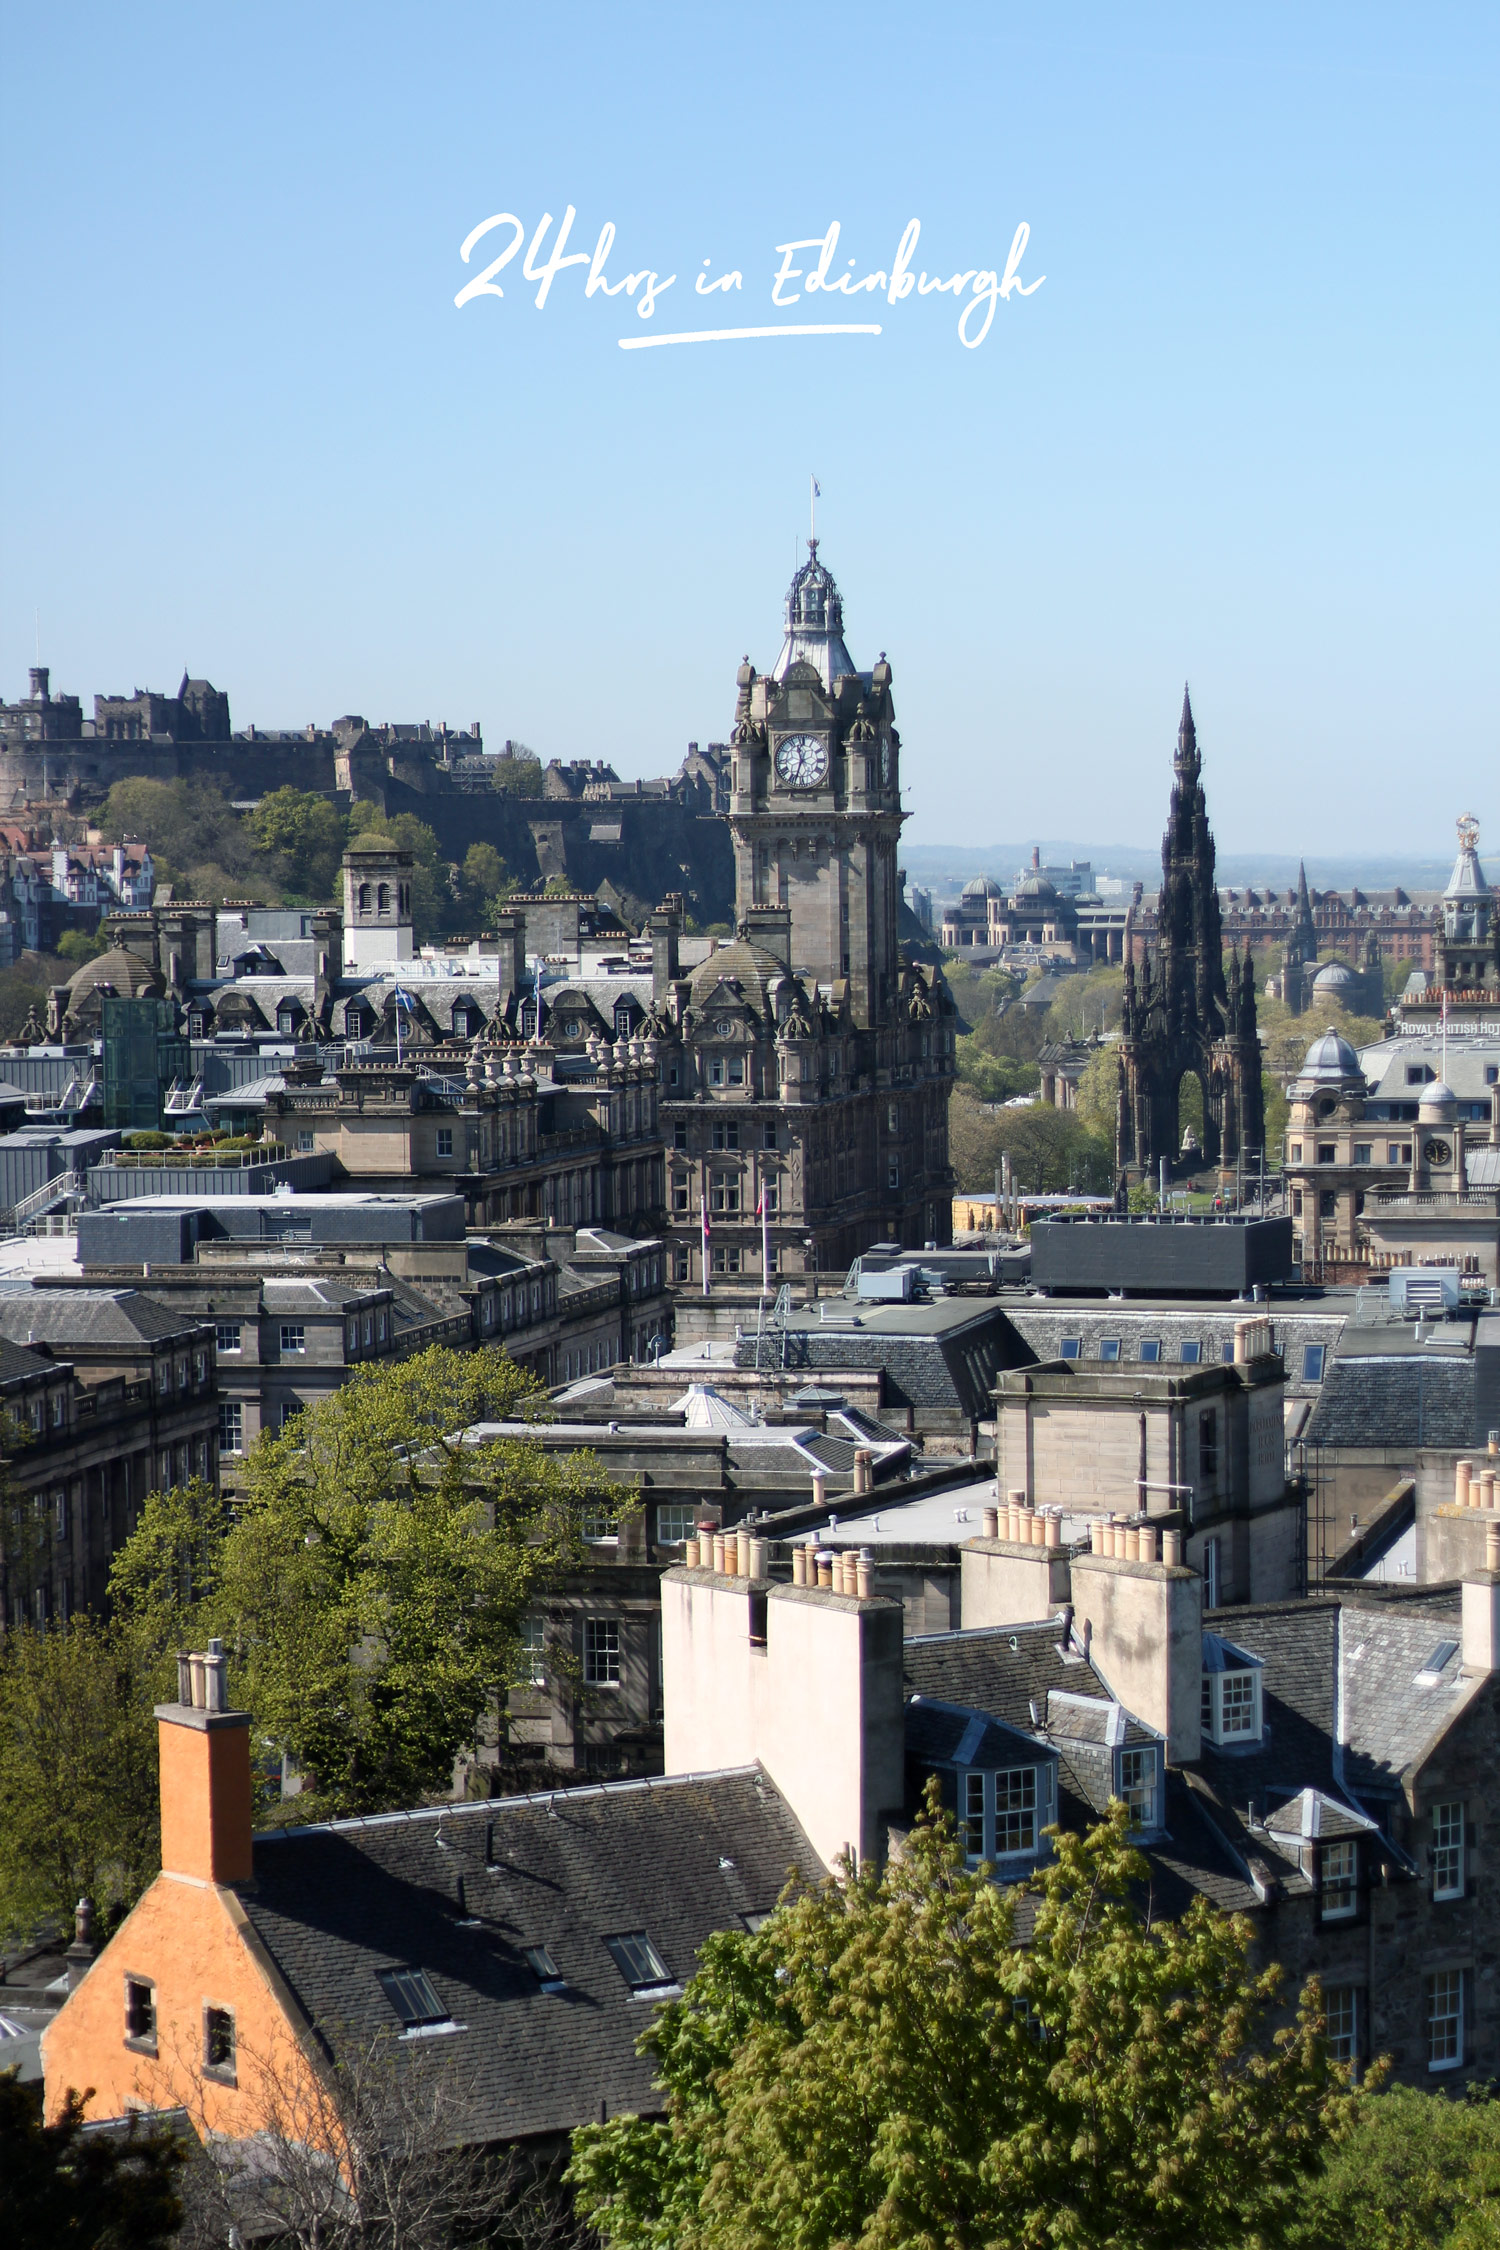 edinburgh-scotland-mercure-hotels-review-uk-travel-blogger-lifestyle-13